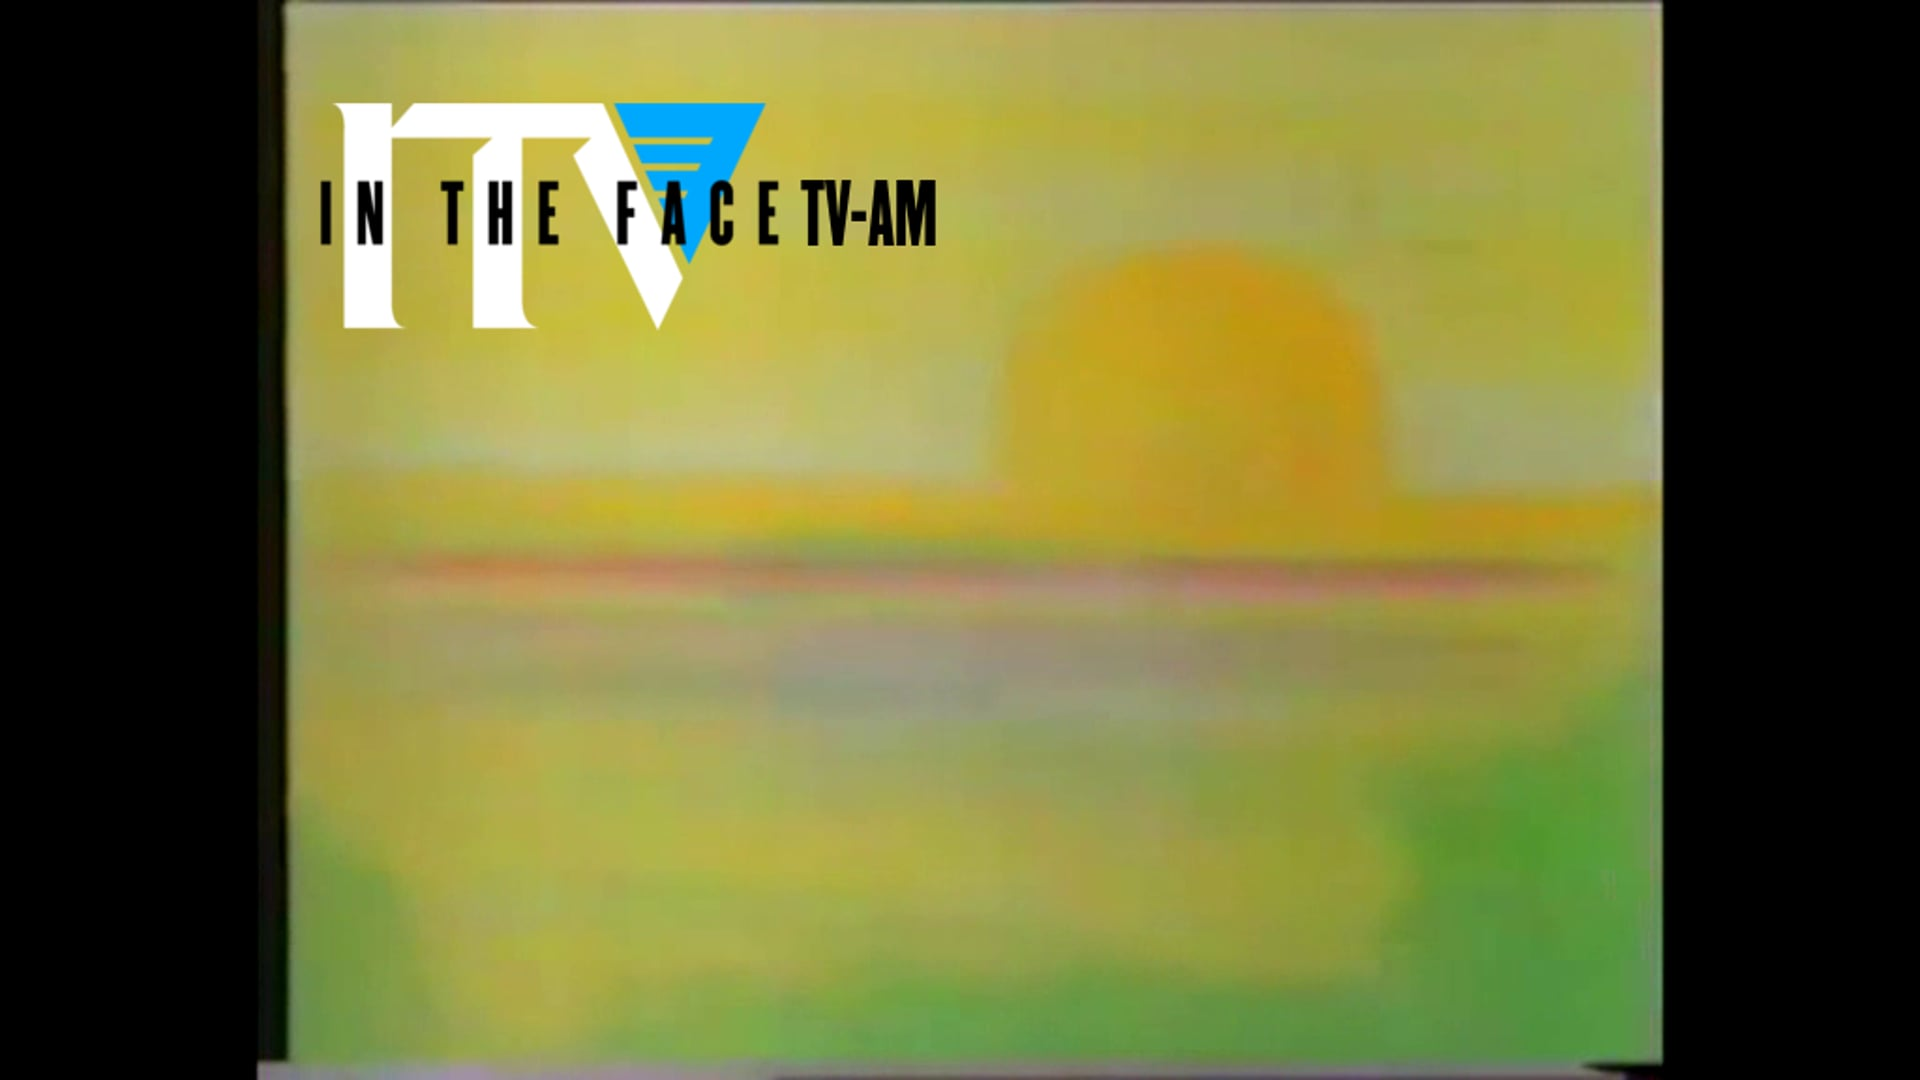 ITV in the Face: Episode 3 - TV-am